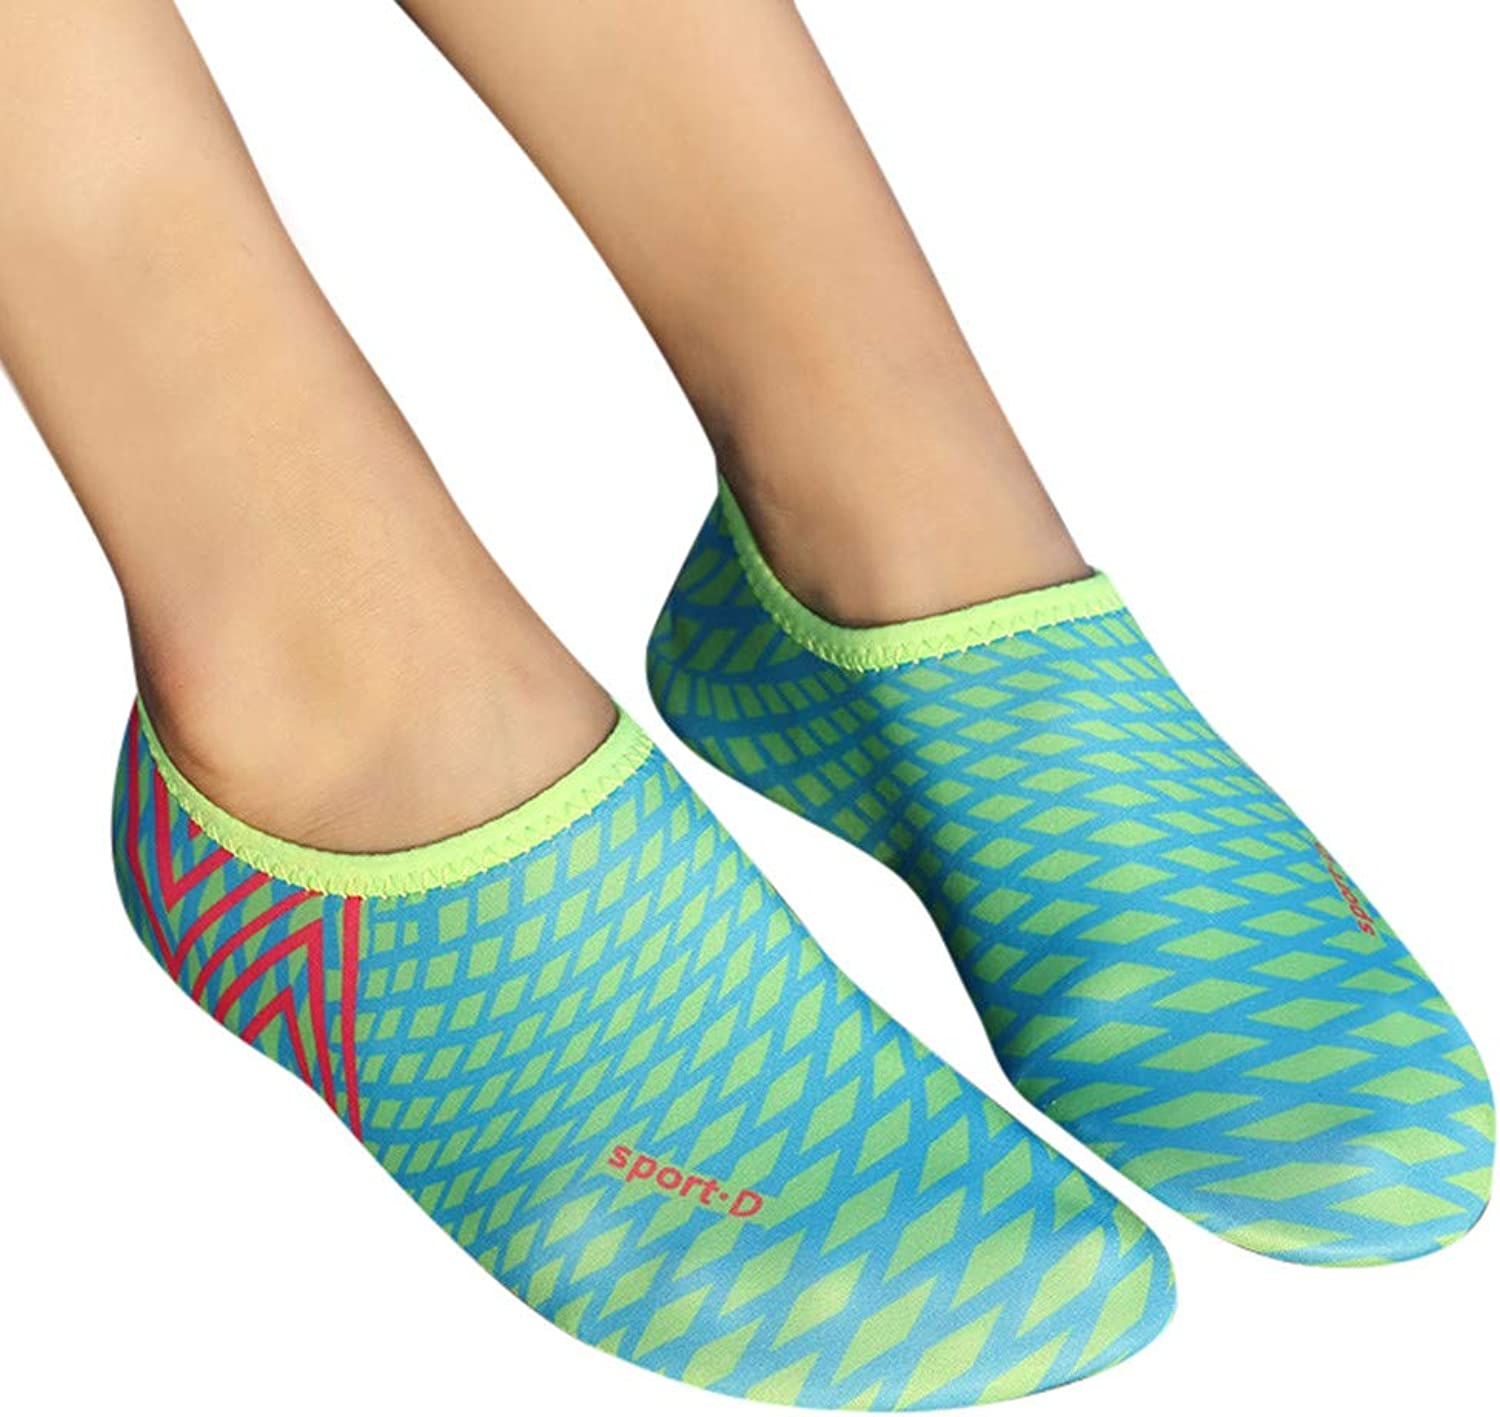 Womens Water Sports shoes Quick Dry Aqua Socks Swim Barefoot Beach shoes